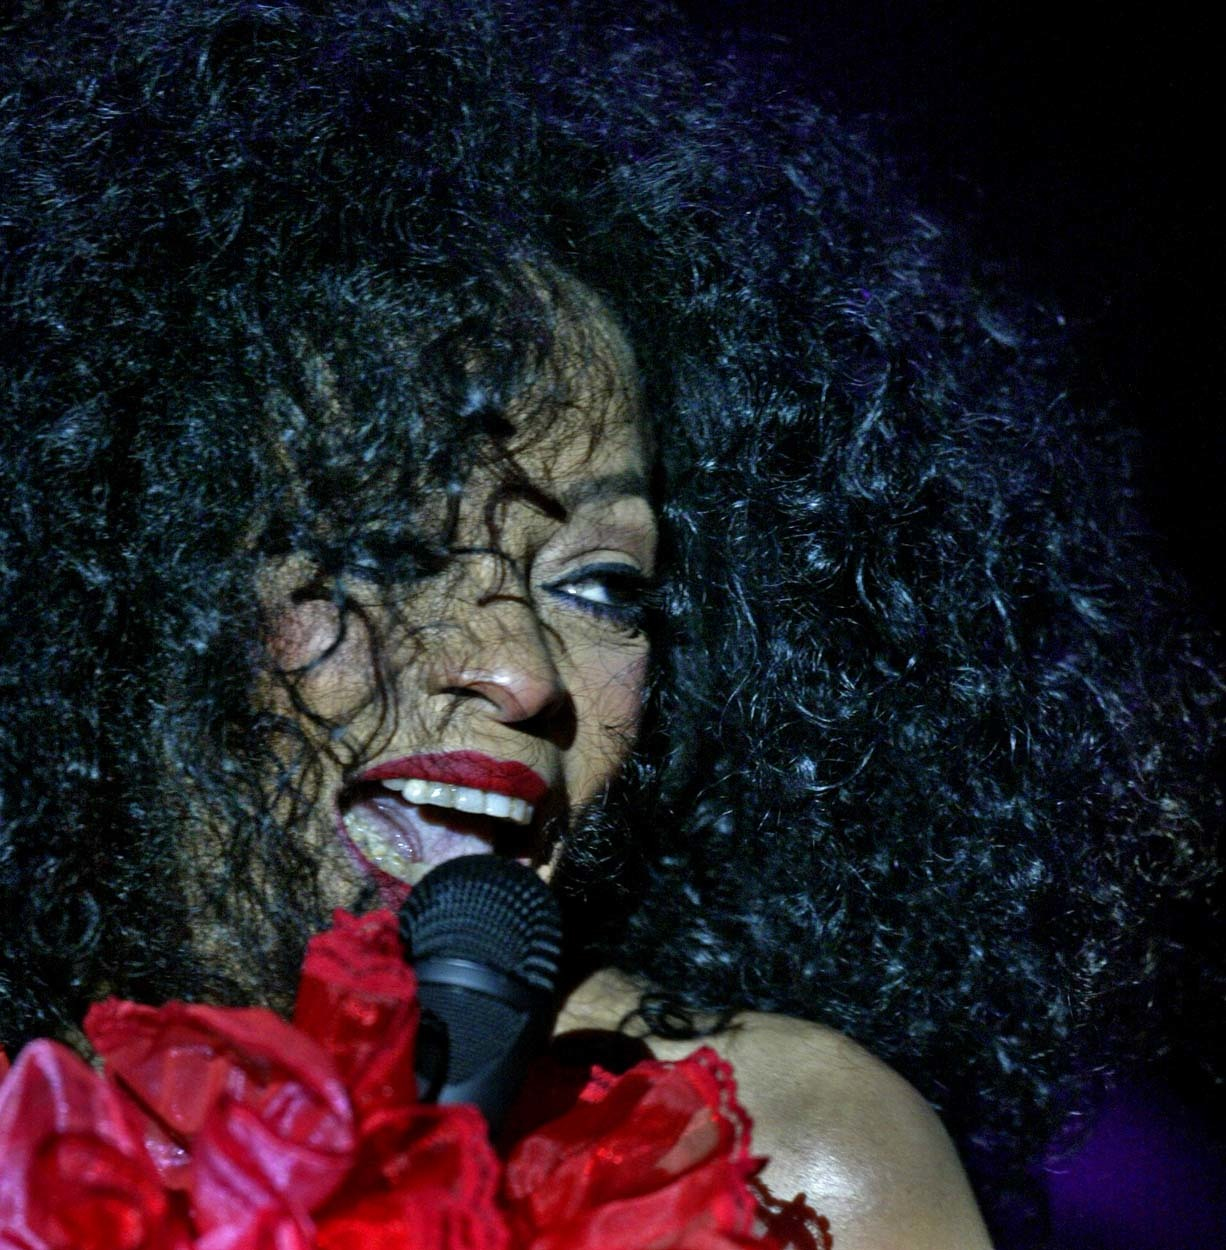 Marlin Levison - Strib 11/21/04 - Assign #92621- Diana Ross in concert at Mystic lake Casino.%% IN THIS PHOTO: